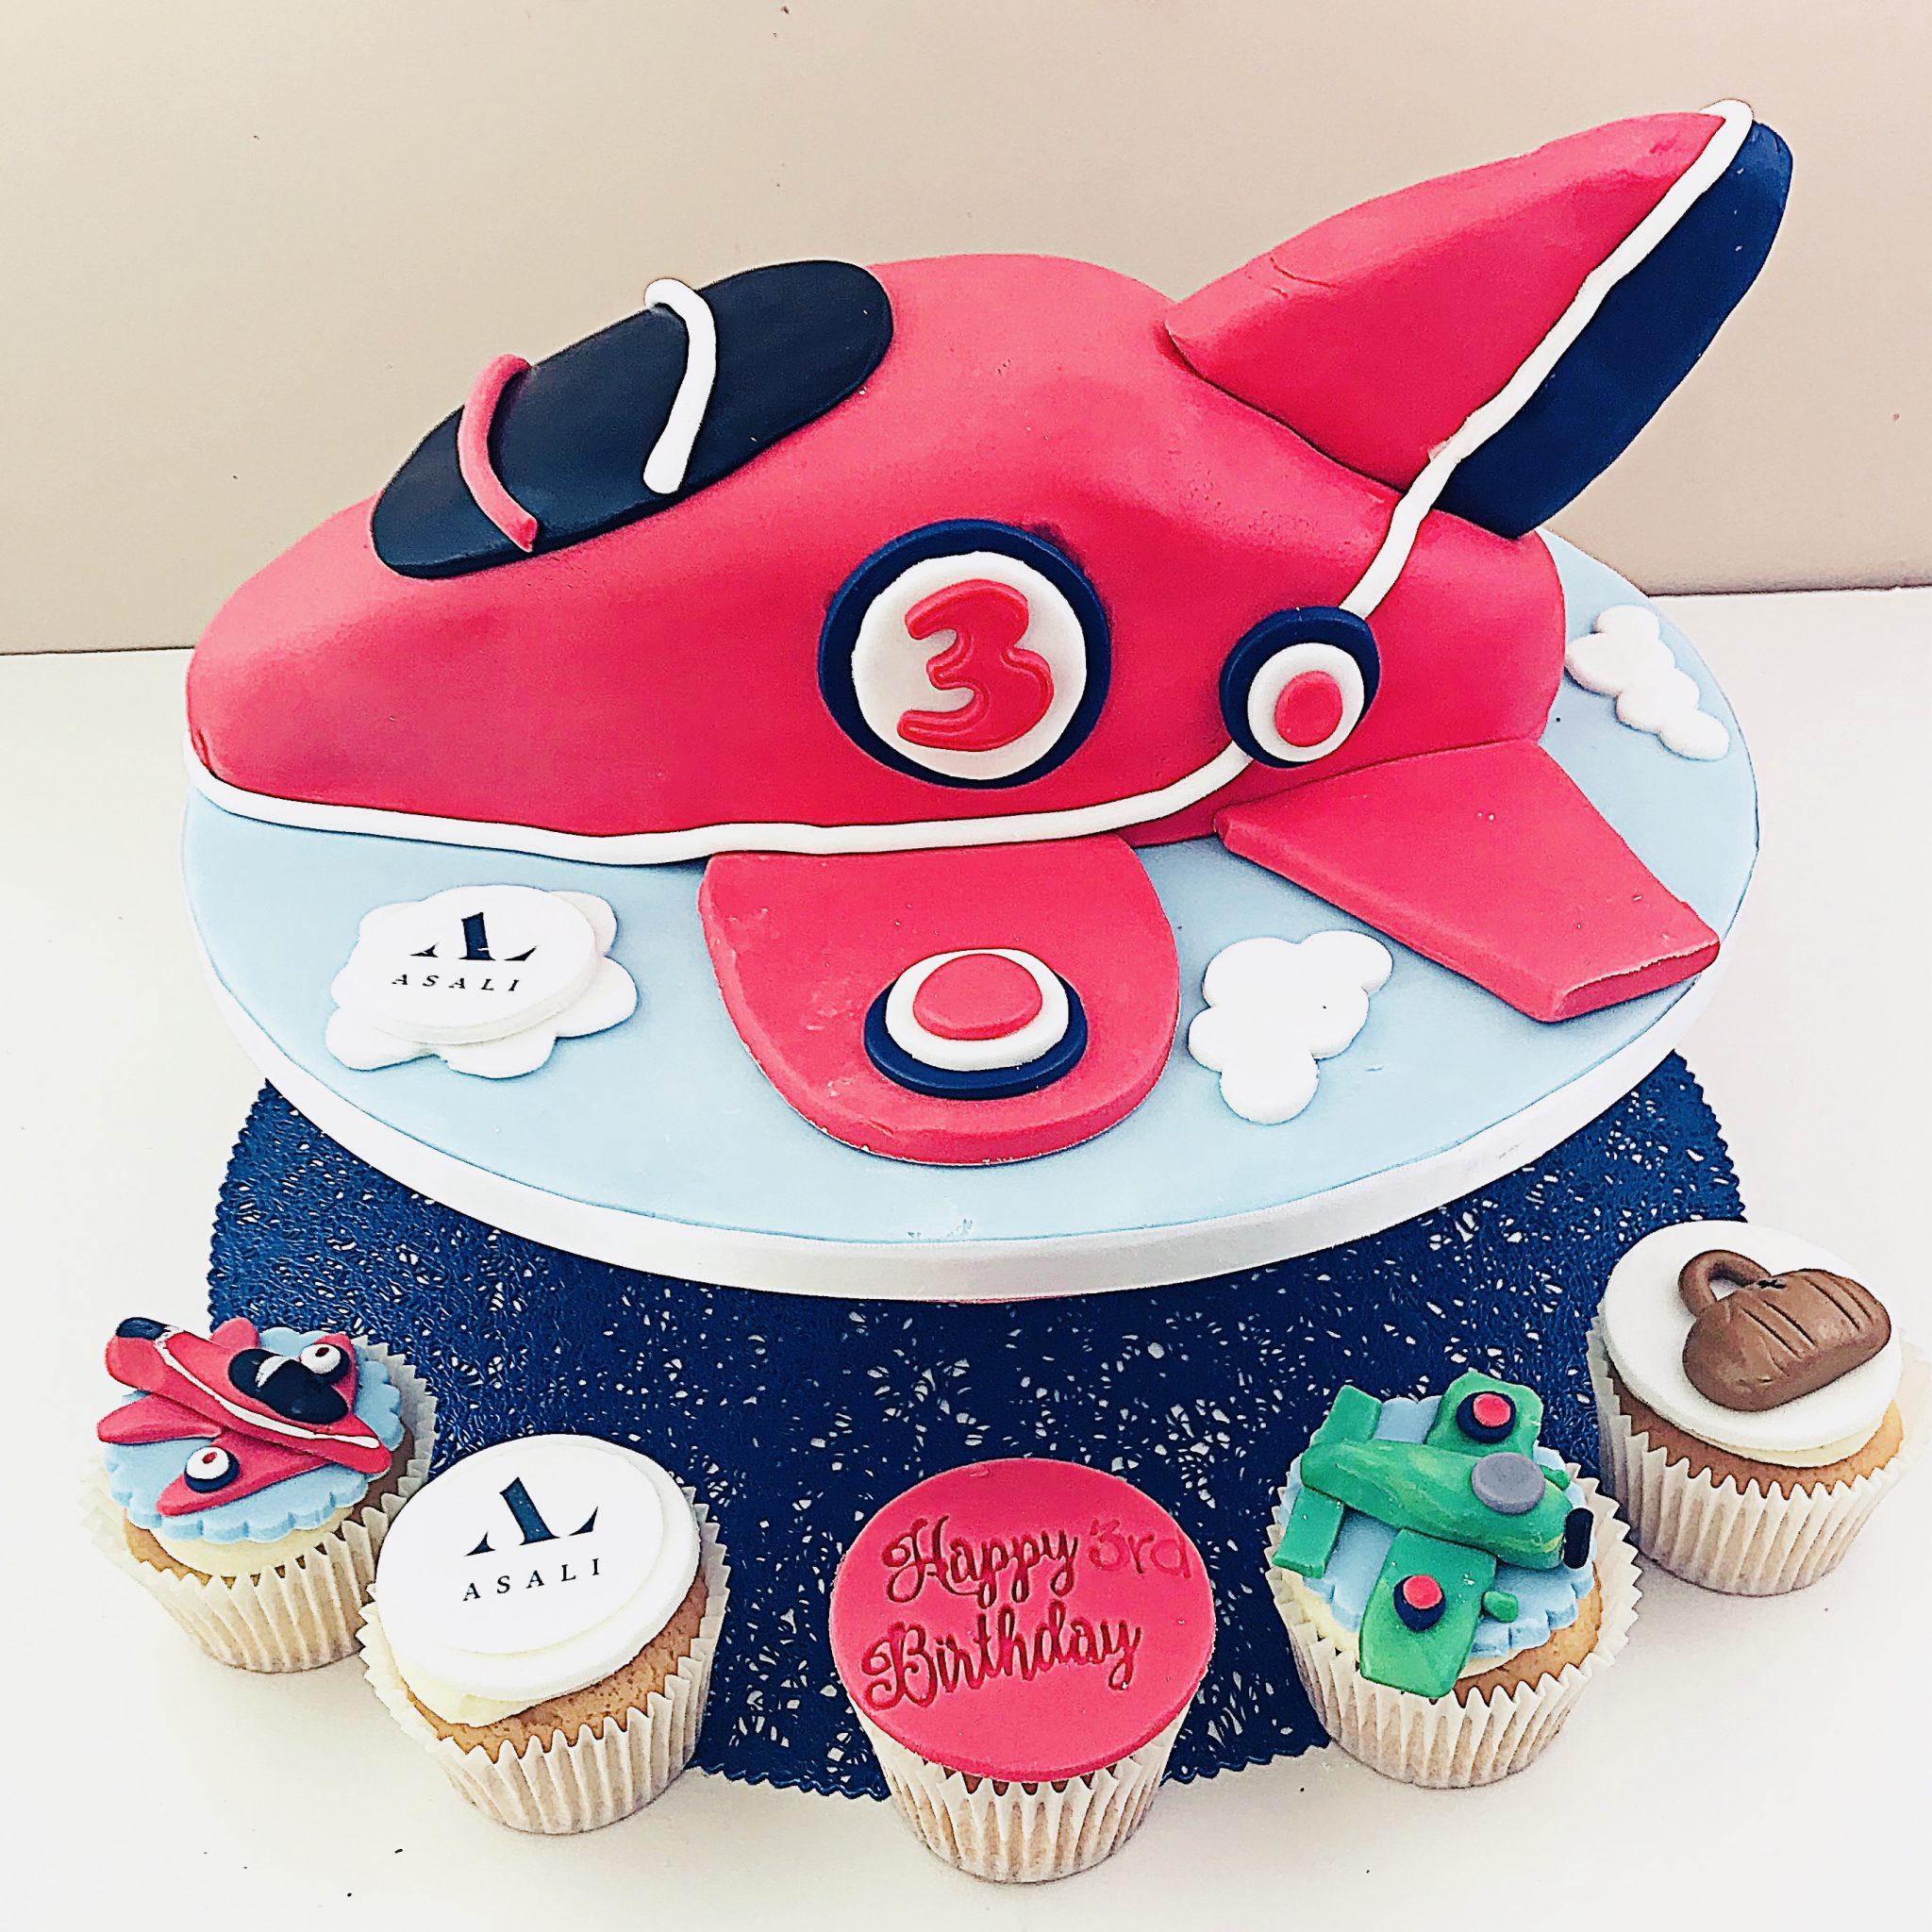 back garden bakery cakes for asali red arrows spitfire